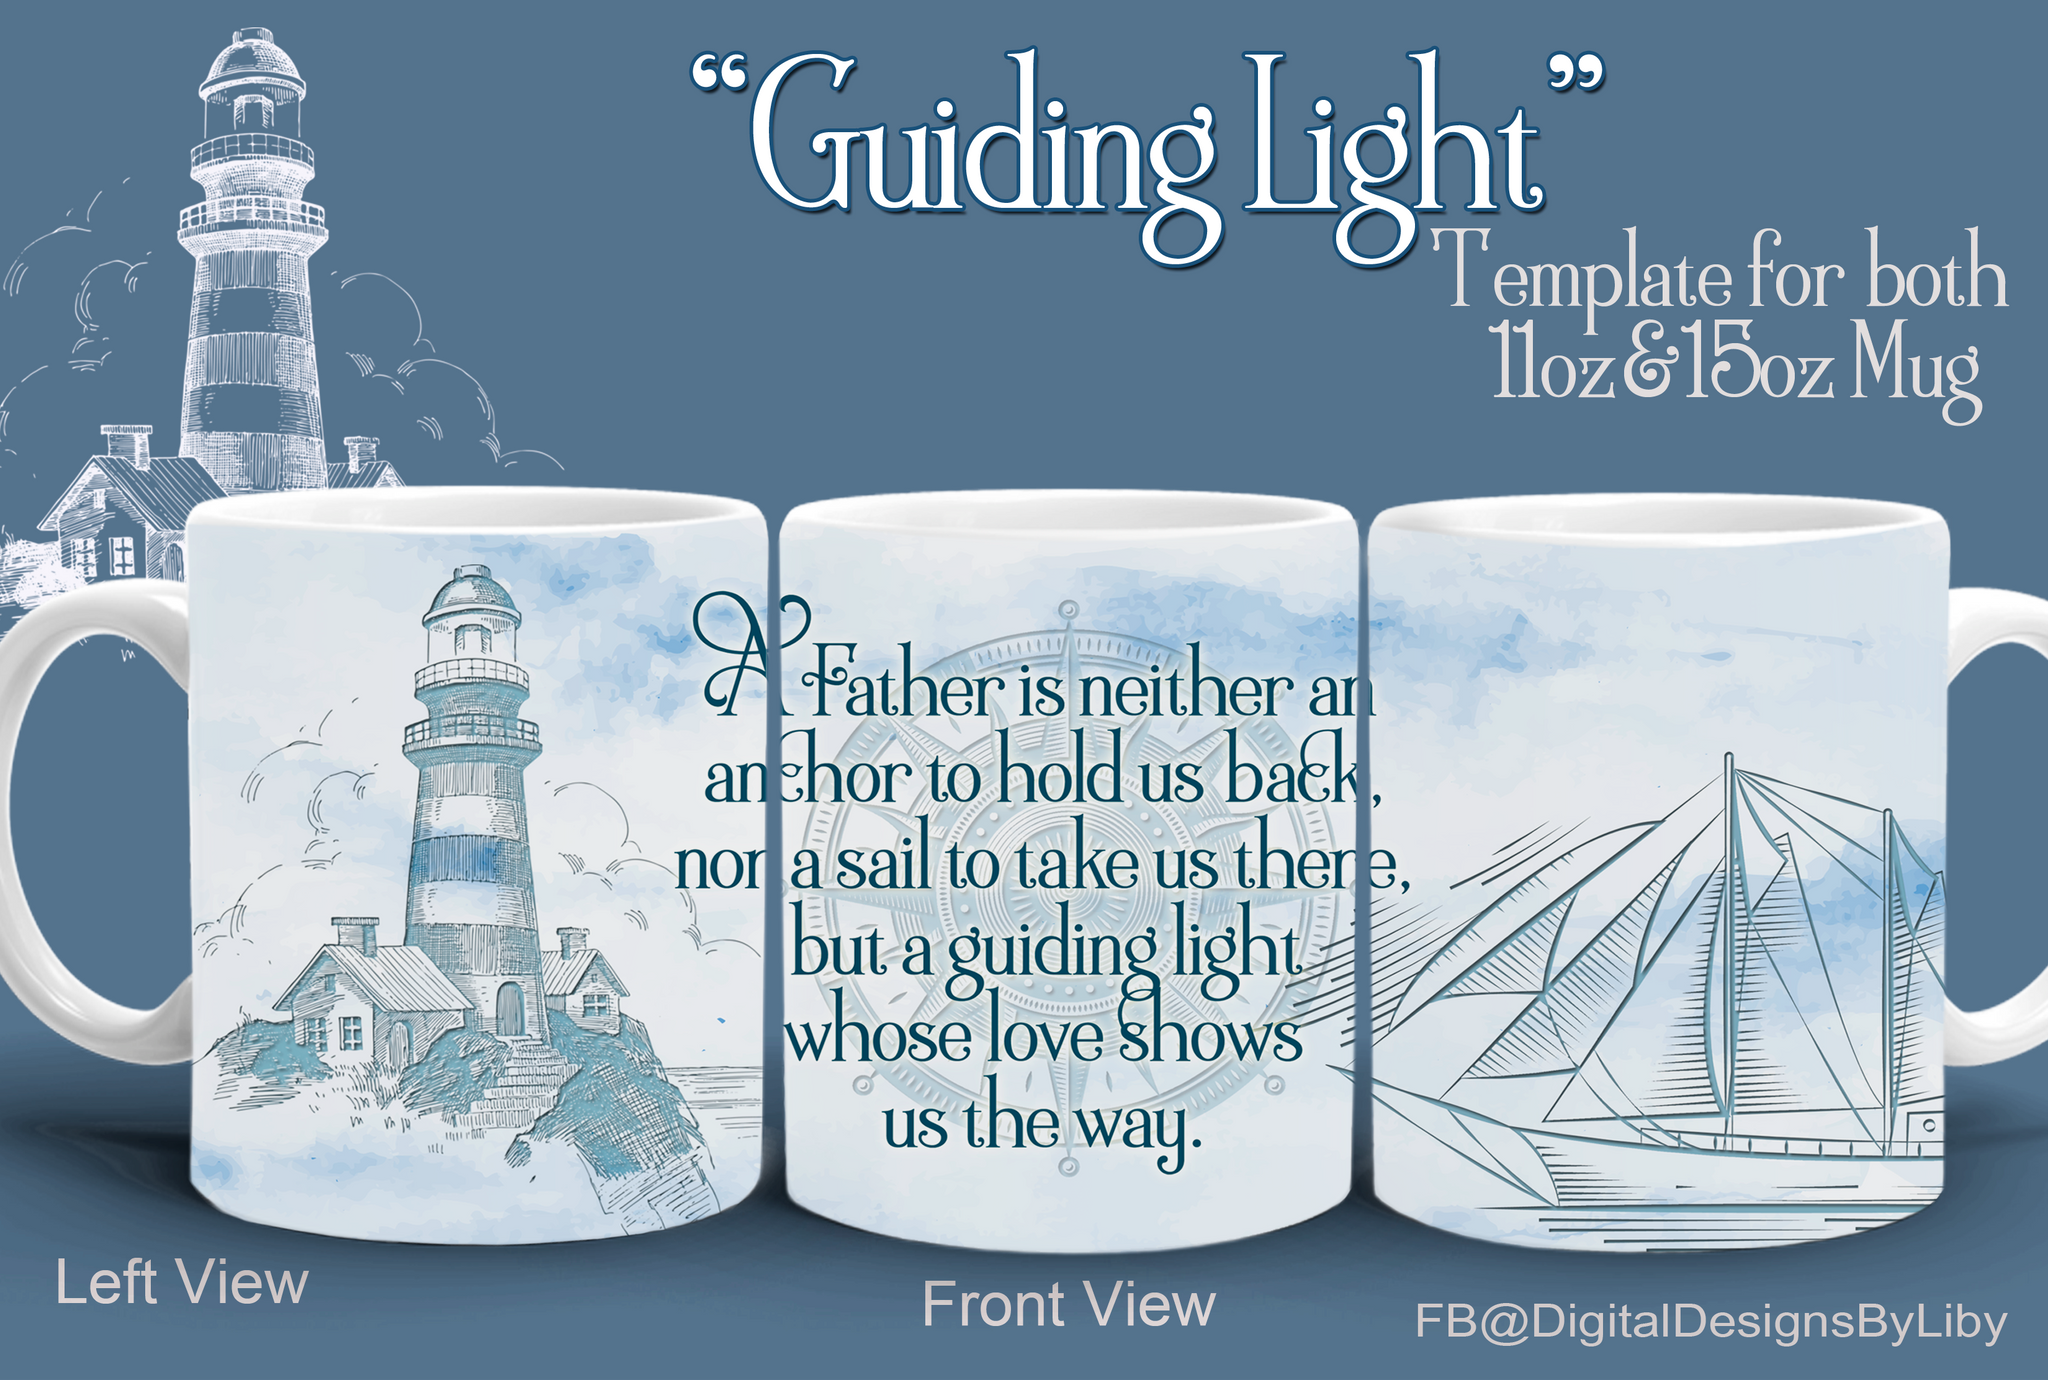 Guiding Light Mug+Slate Templates